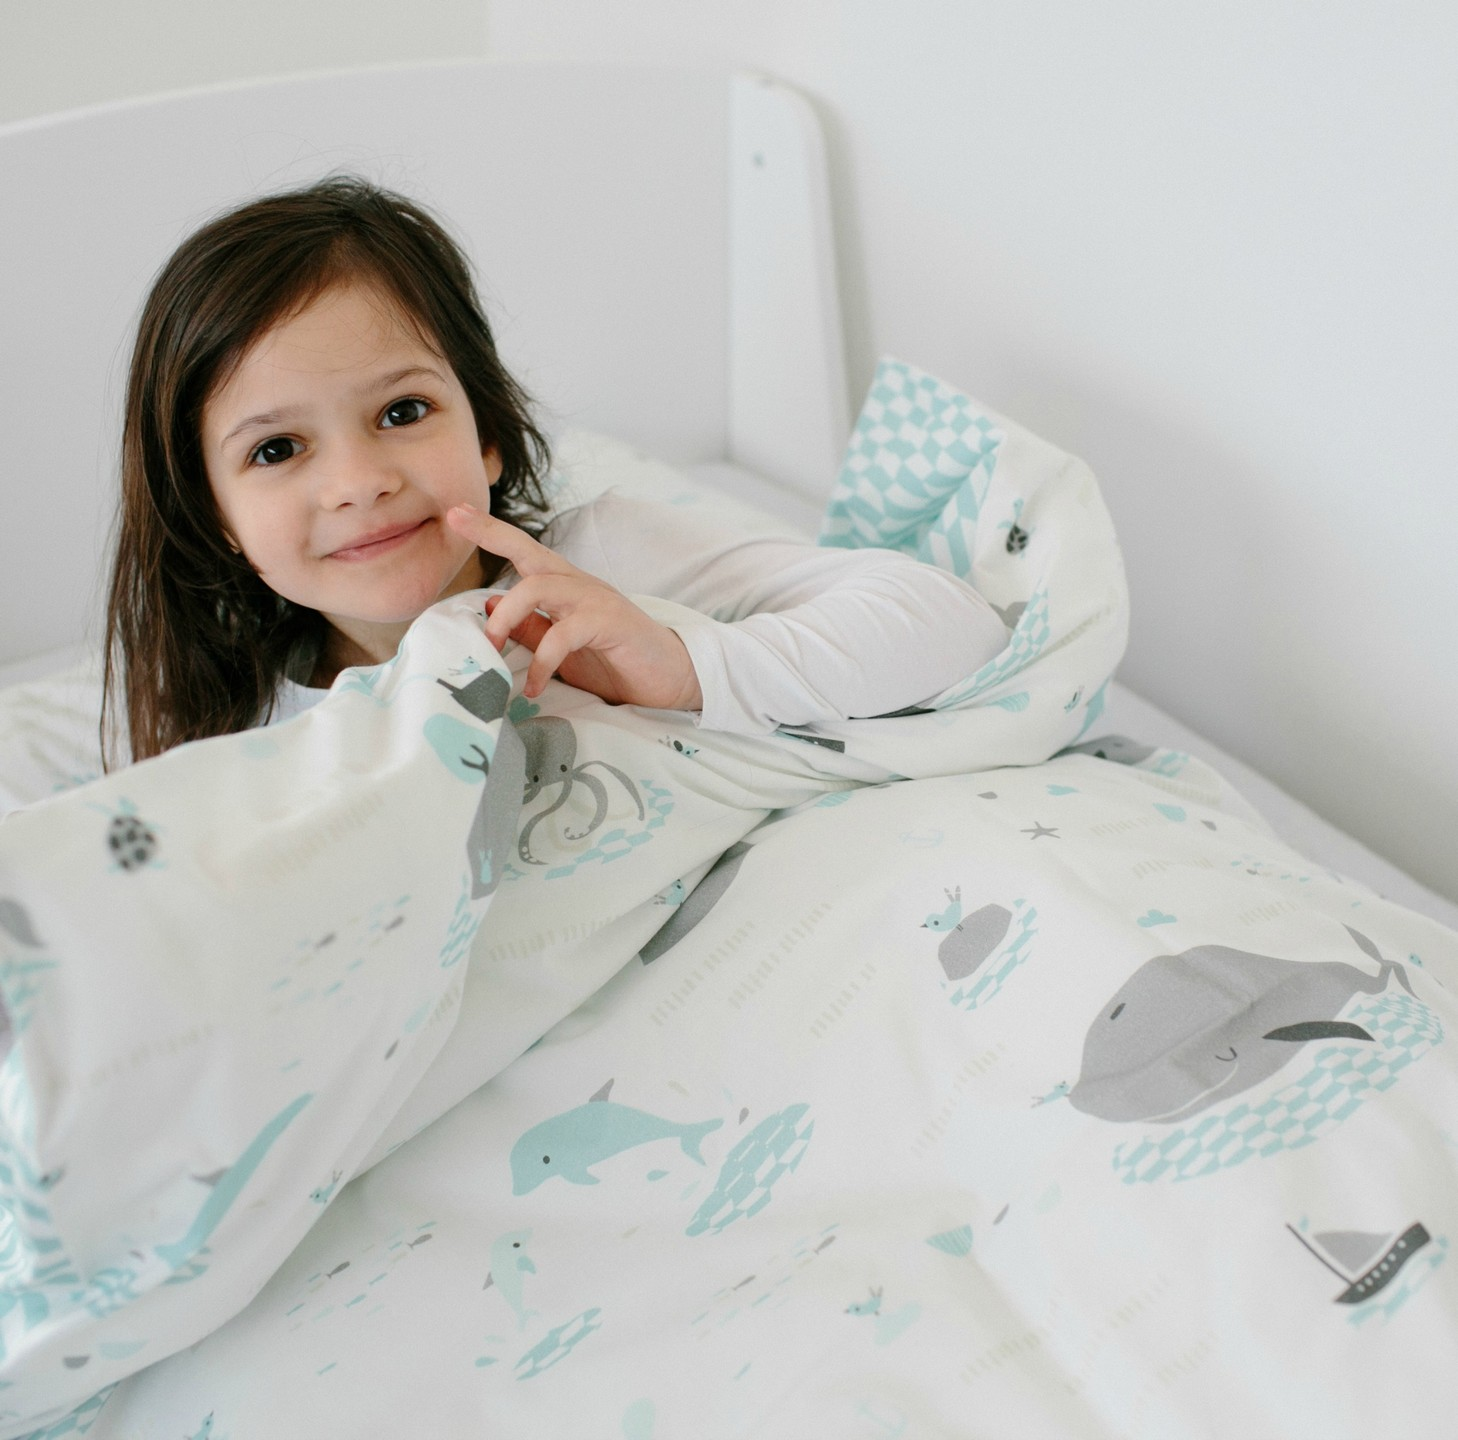 millemarille baby bettw sche 70x100cm save the whales baby bettw sche. Black Bedroom Furniture Sets. Home Design Ideas